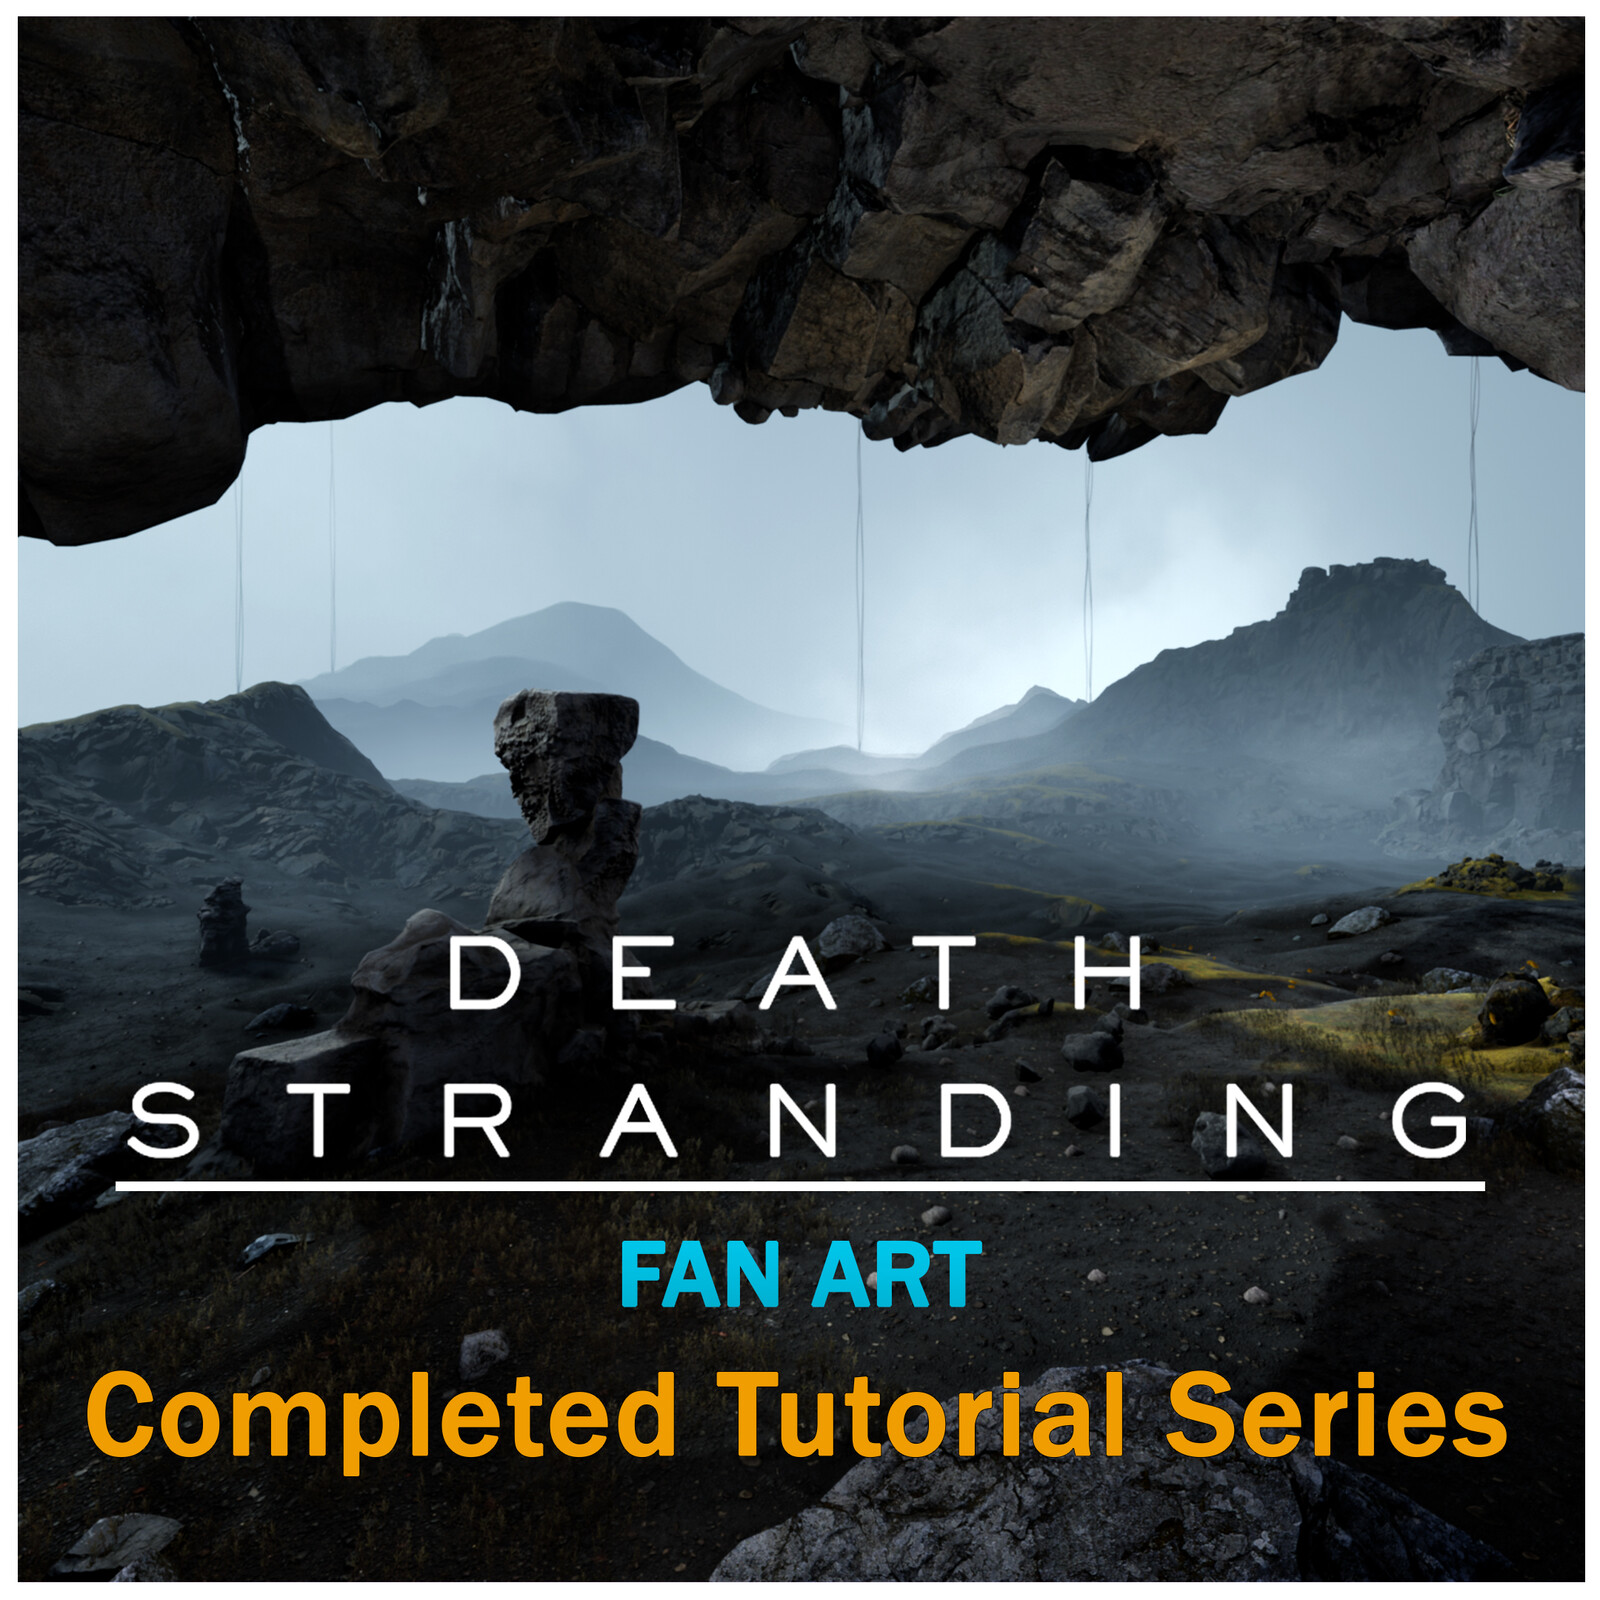 Procedural Death Stranding Fan Art Landscape Tutorial Completed Series with Houdini and UE4